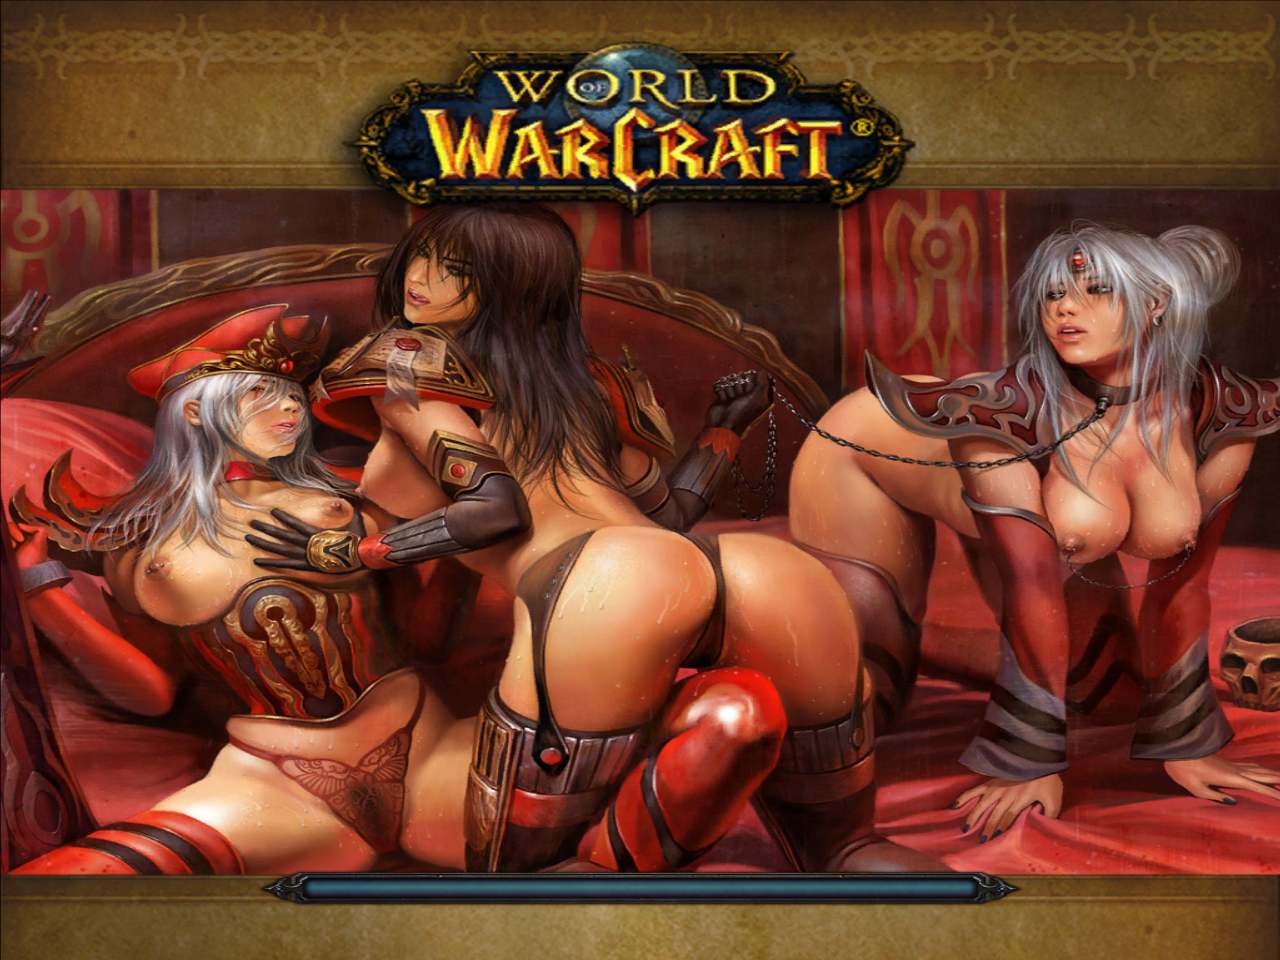 World of warcraft naked photo exposed reality bitch